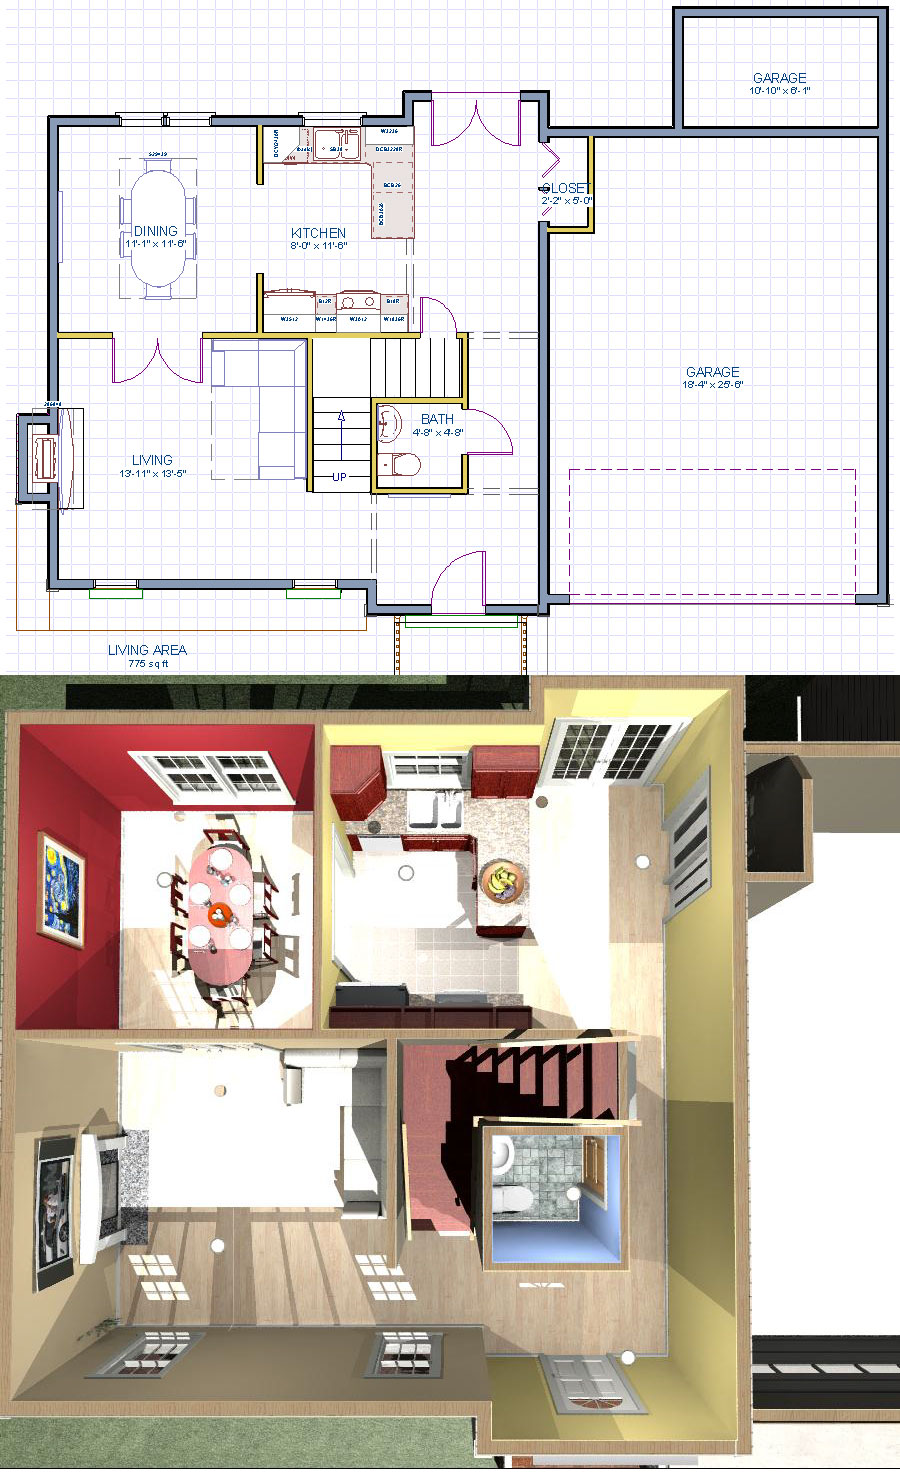 get 3d architectural designs for your project 1 interior rendering of floor plan